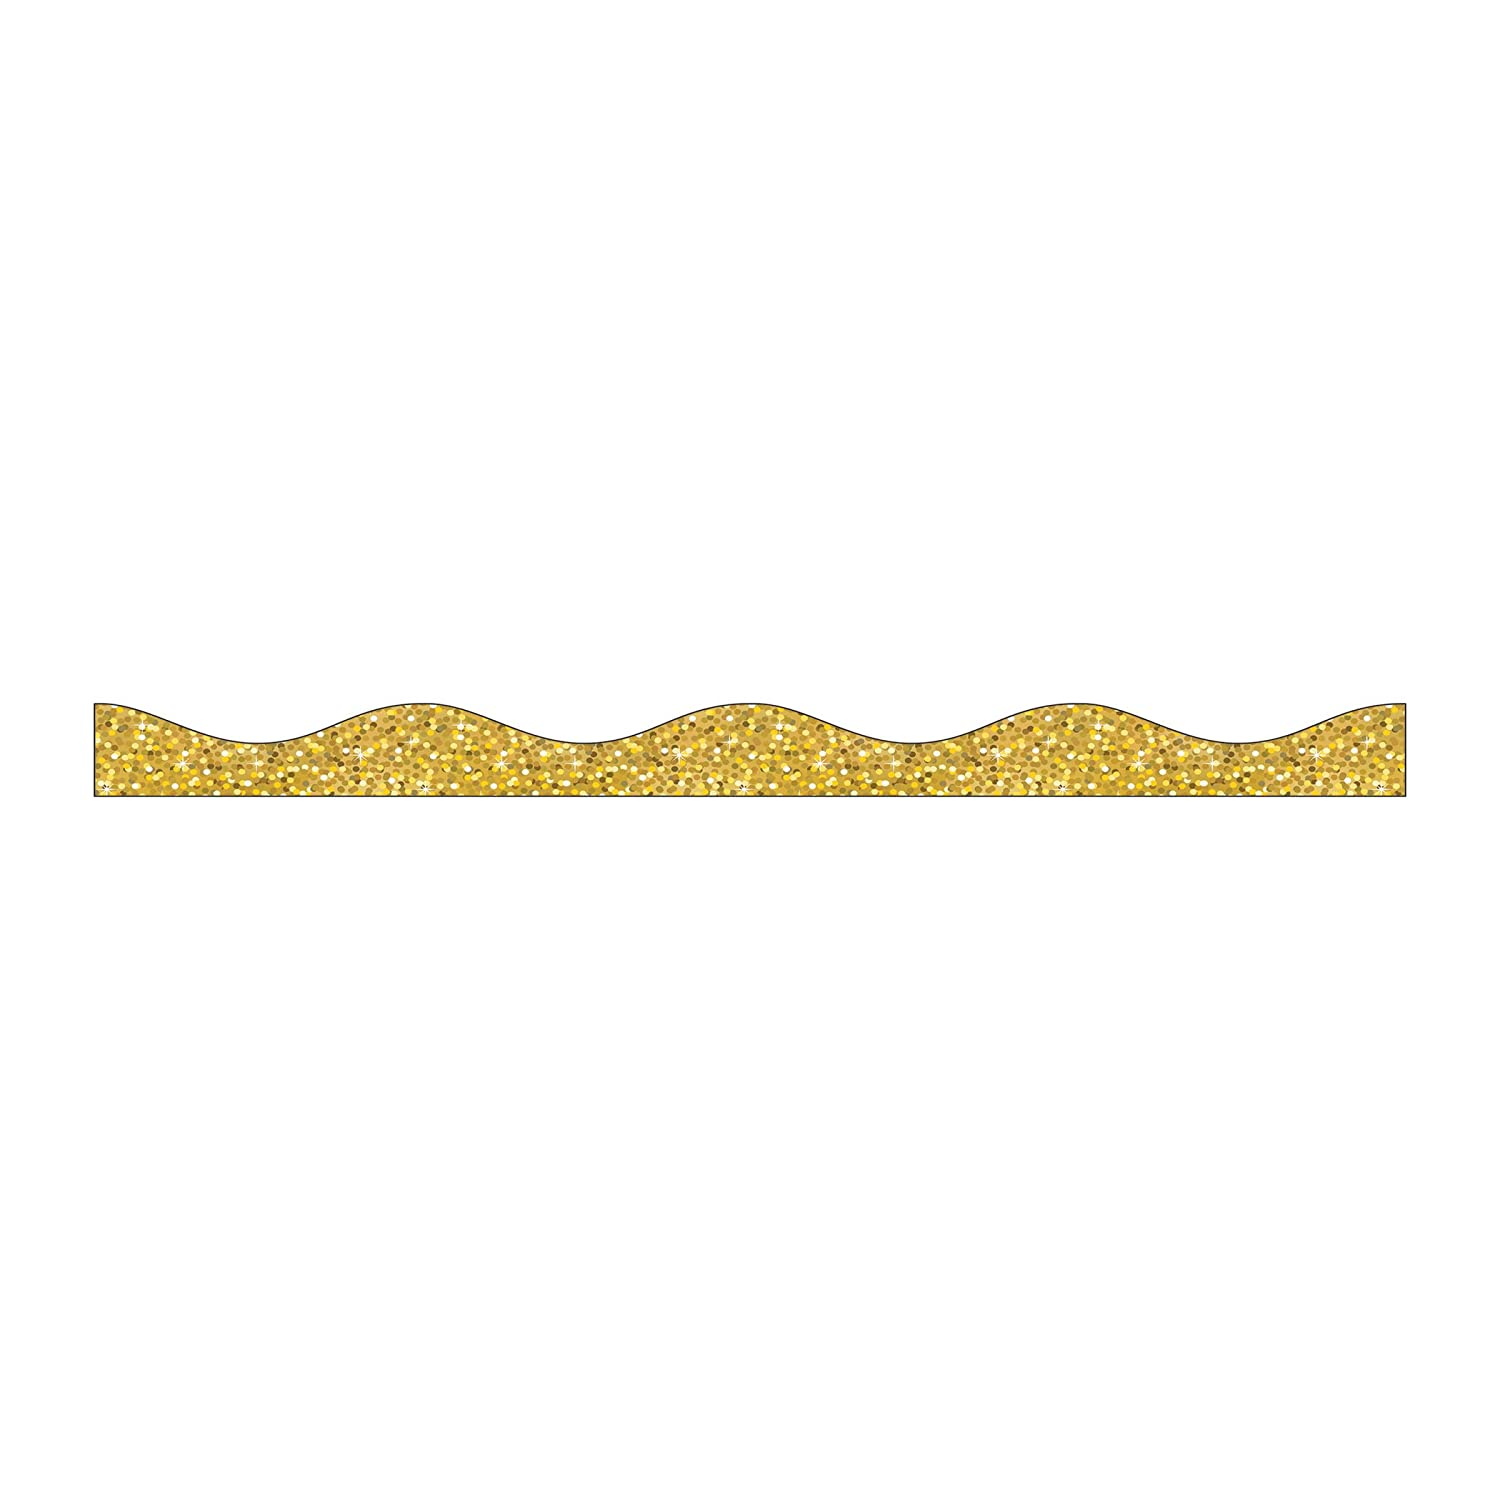 Ashley Productions Sparkle Big Magnetic Border, Gold